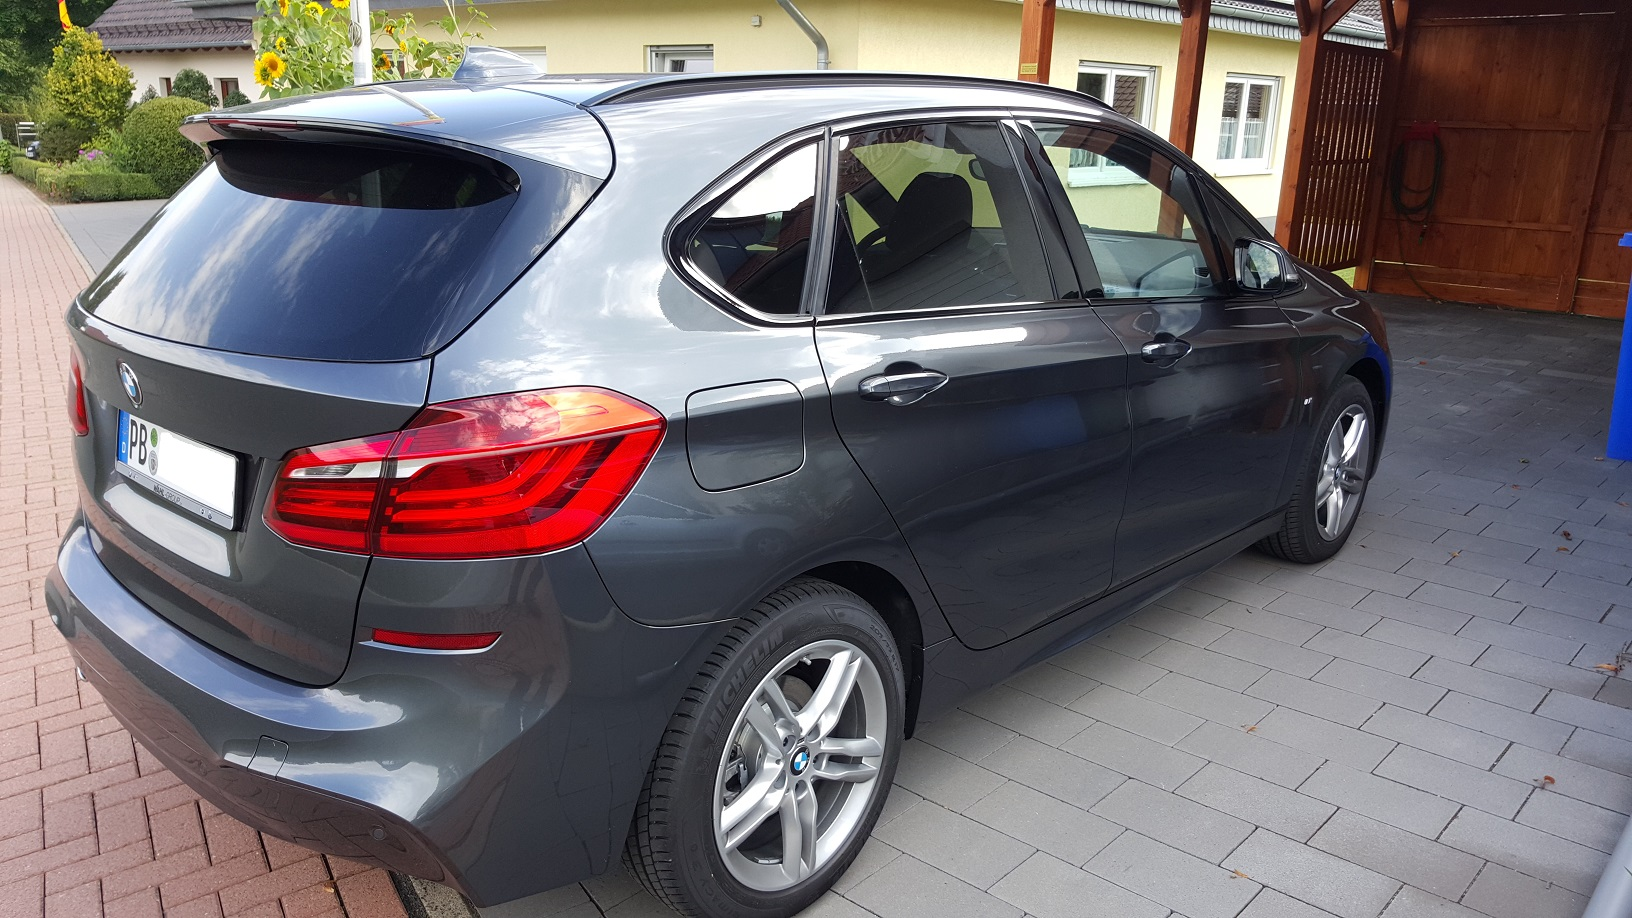 mineralgrau 218i automatik msport paket galerie 2er bmw active tourer forum 2er bmw gran. Black Bedroom Furniture Sets. Home Design Ideas